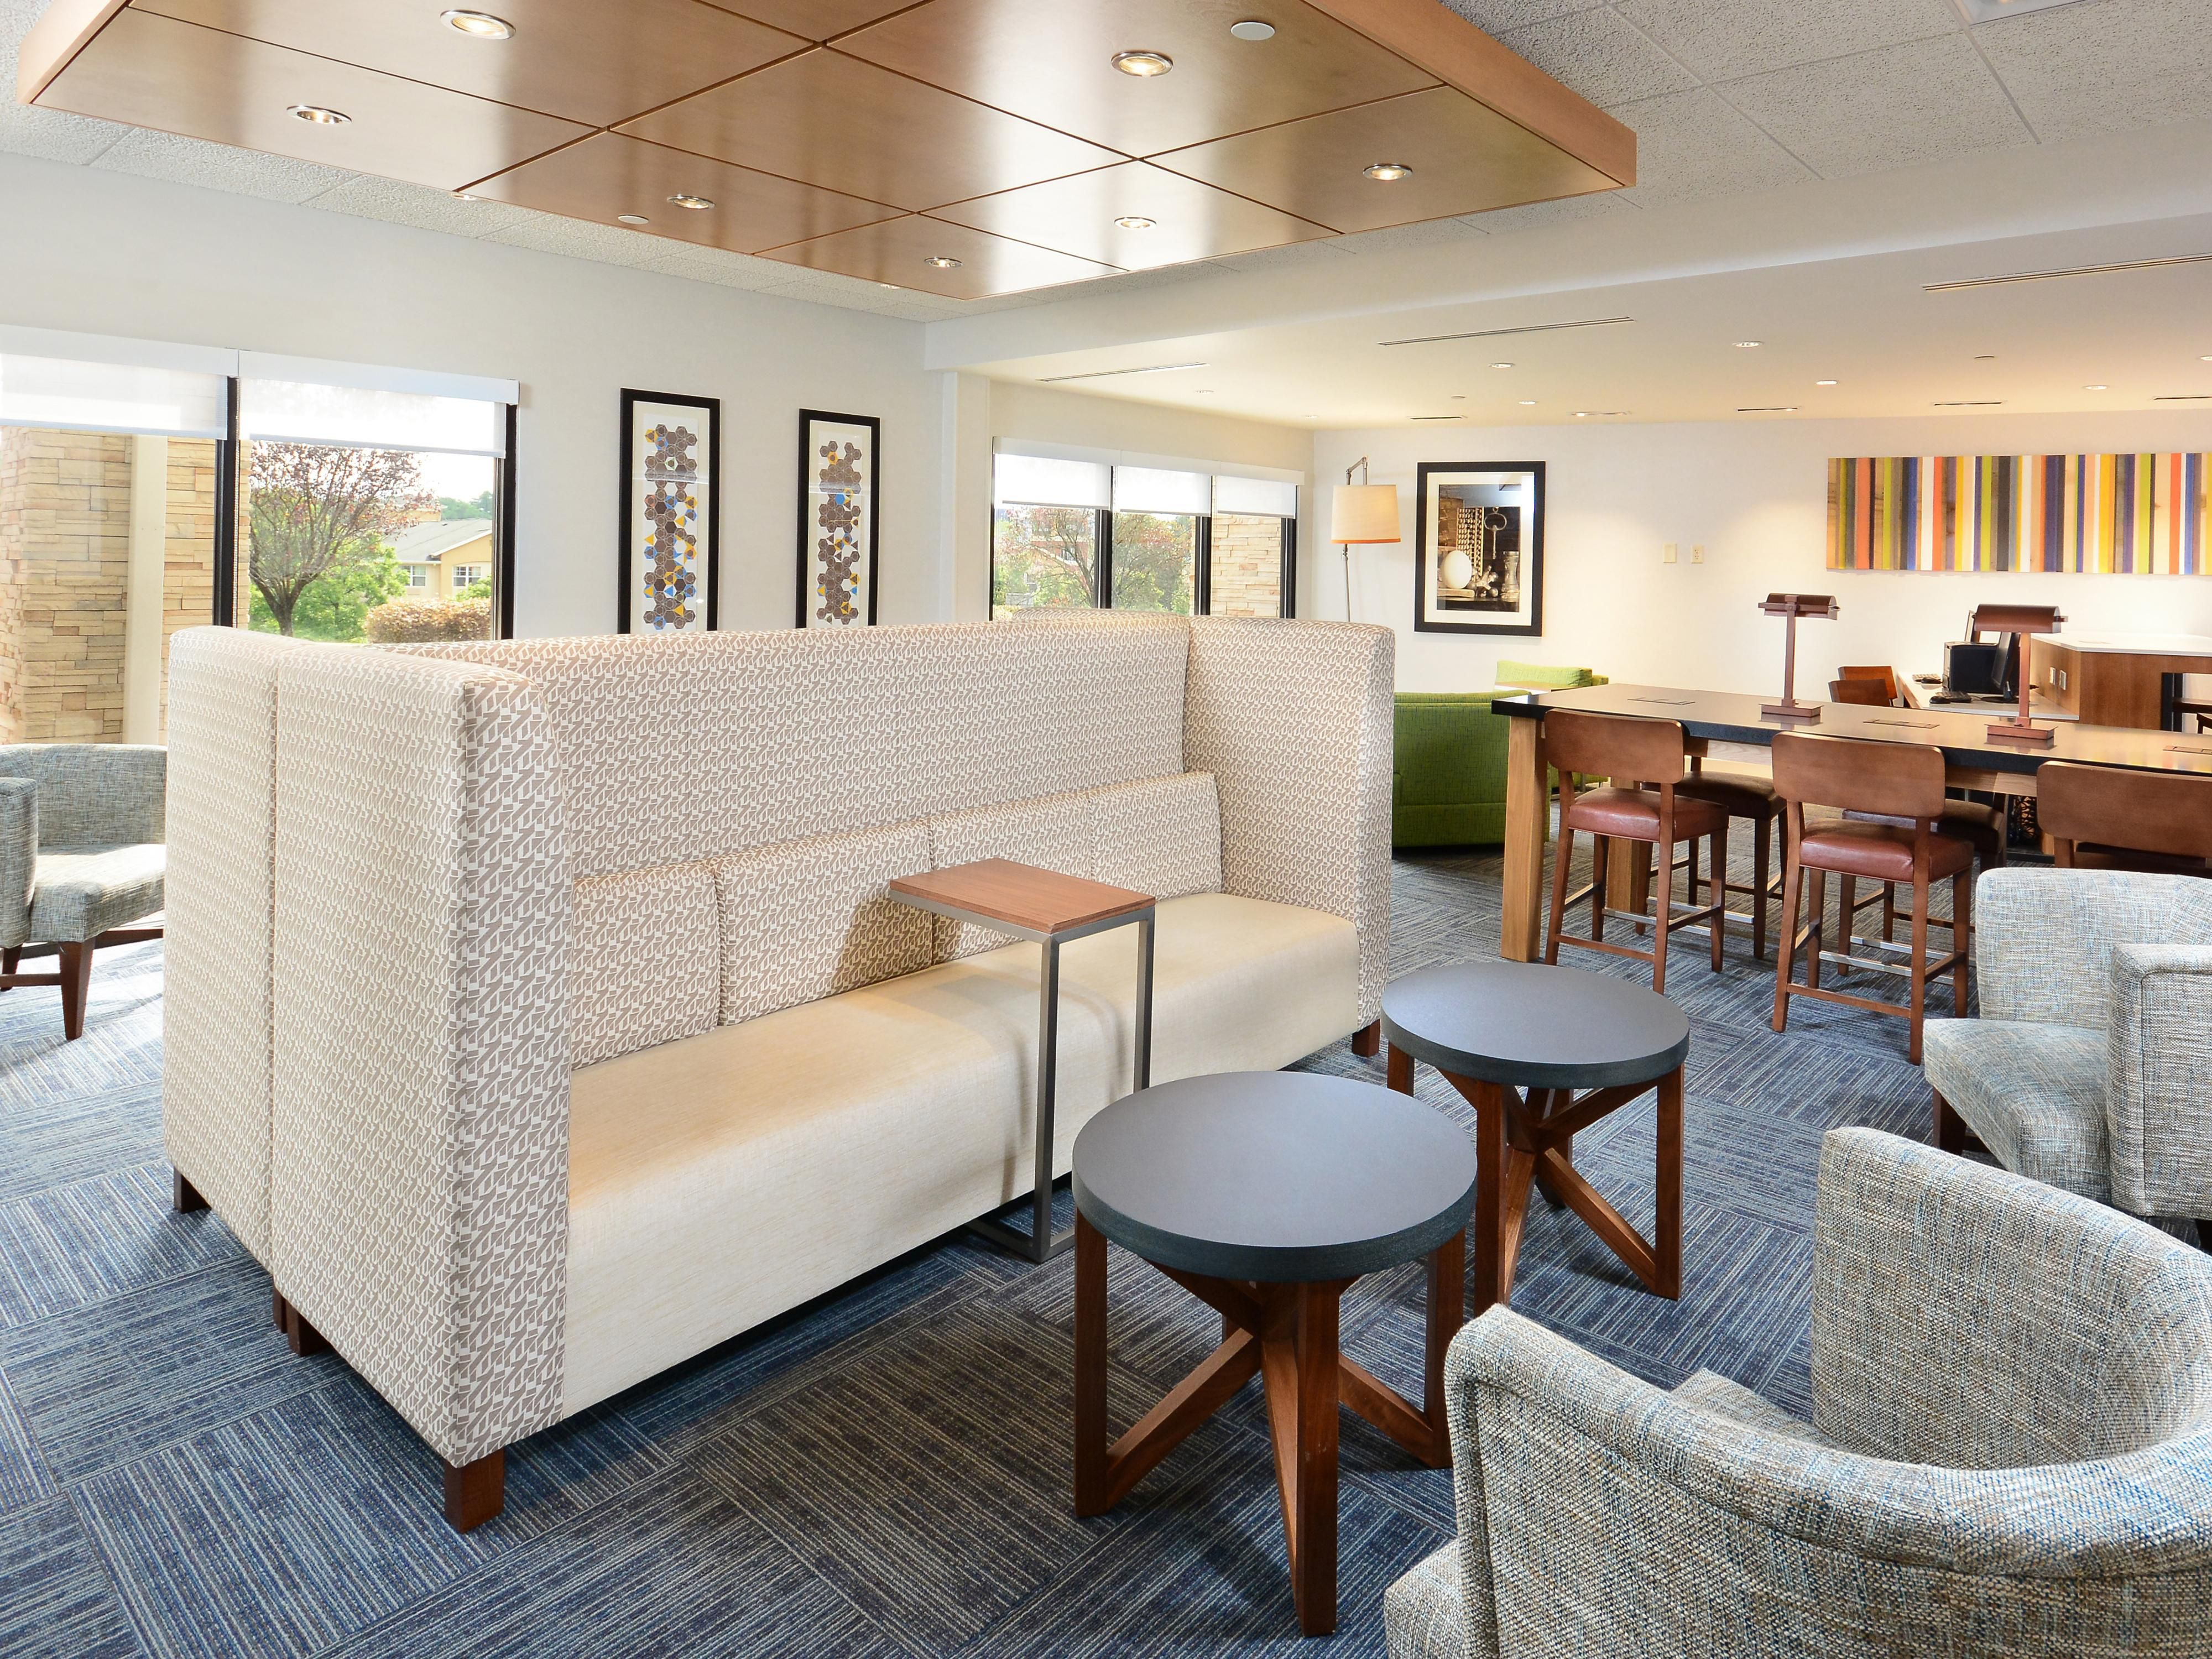 Holiday Inn Express Suites Research Triangle Park Hotel By Ihg